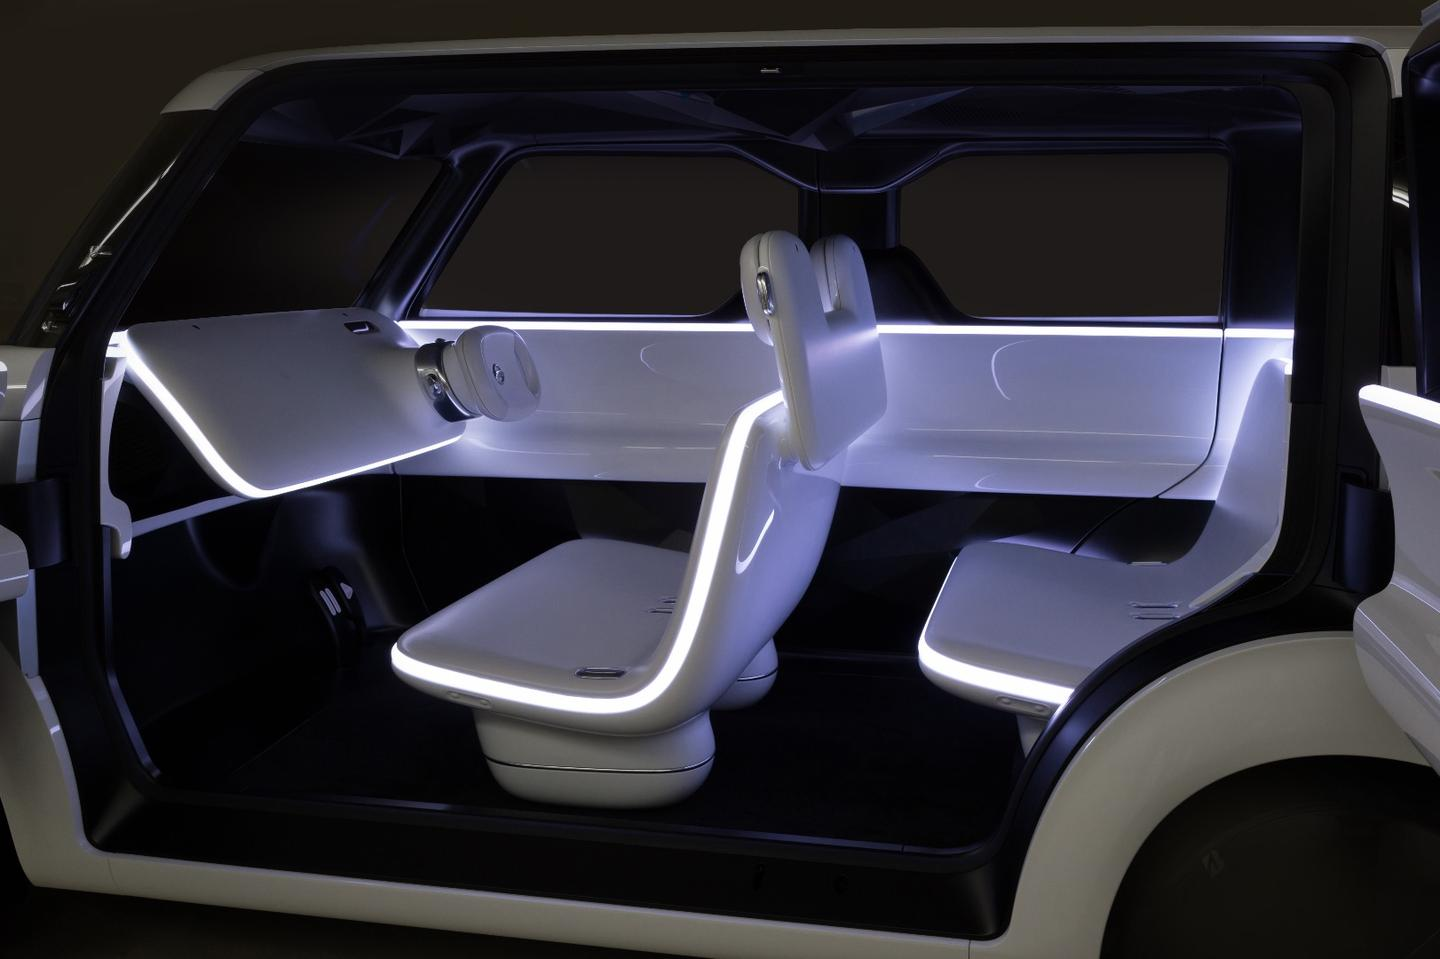 Nissan gives a first look at its Teatro for Dayz concept